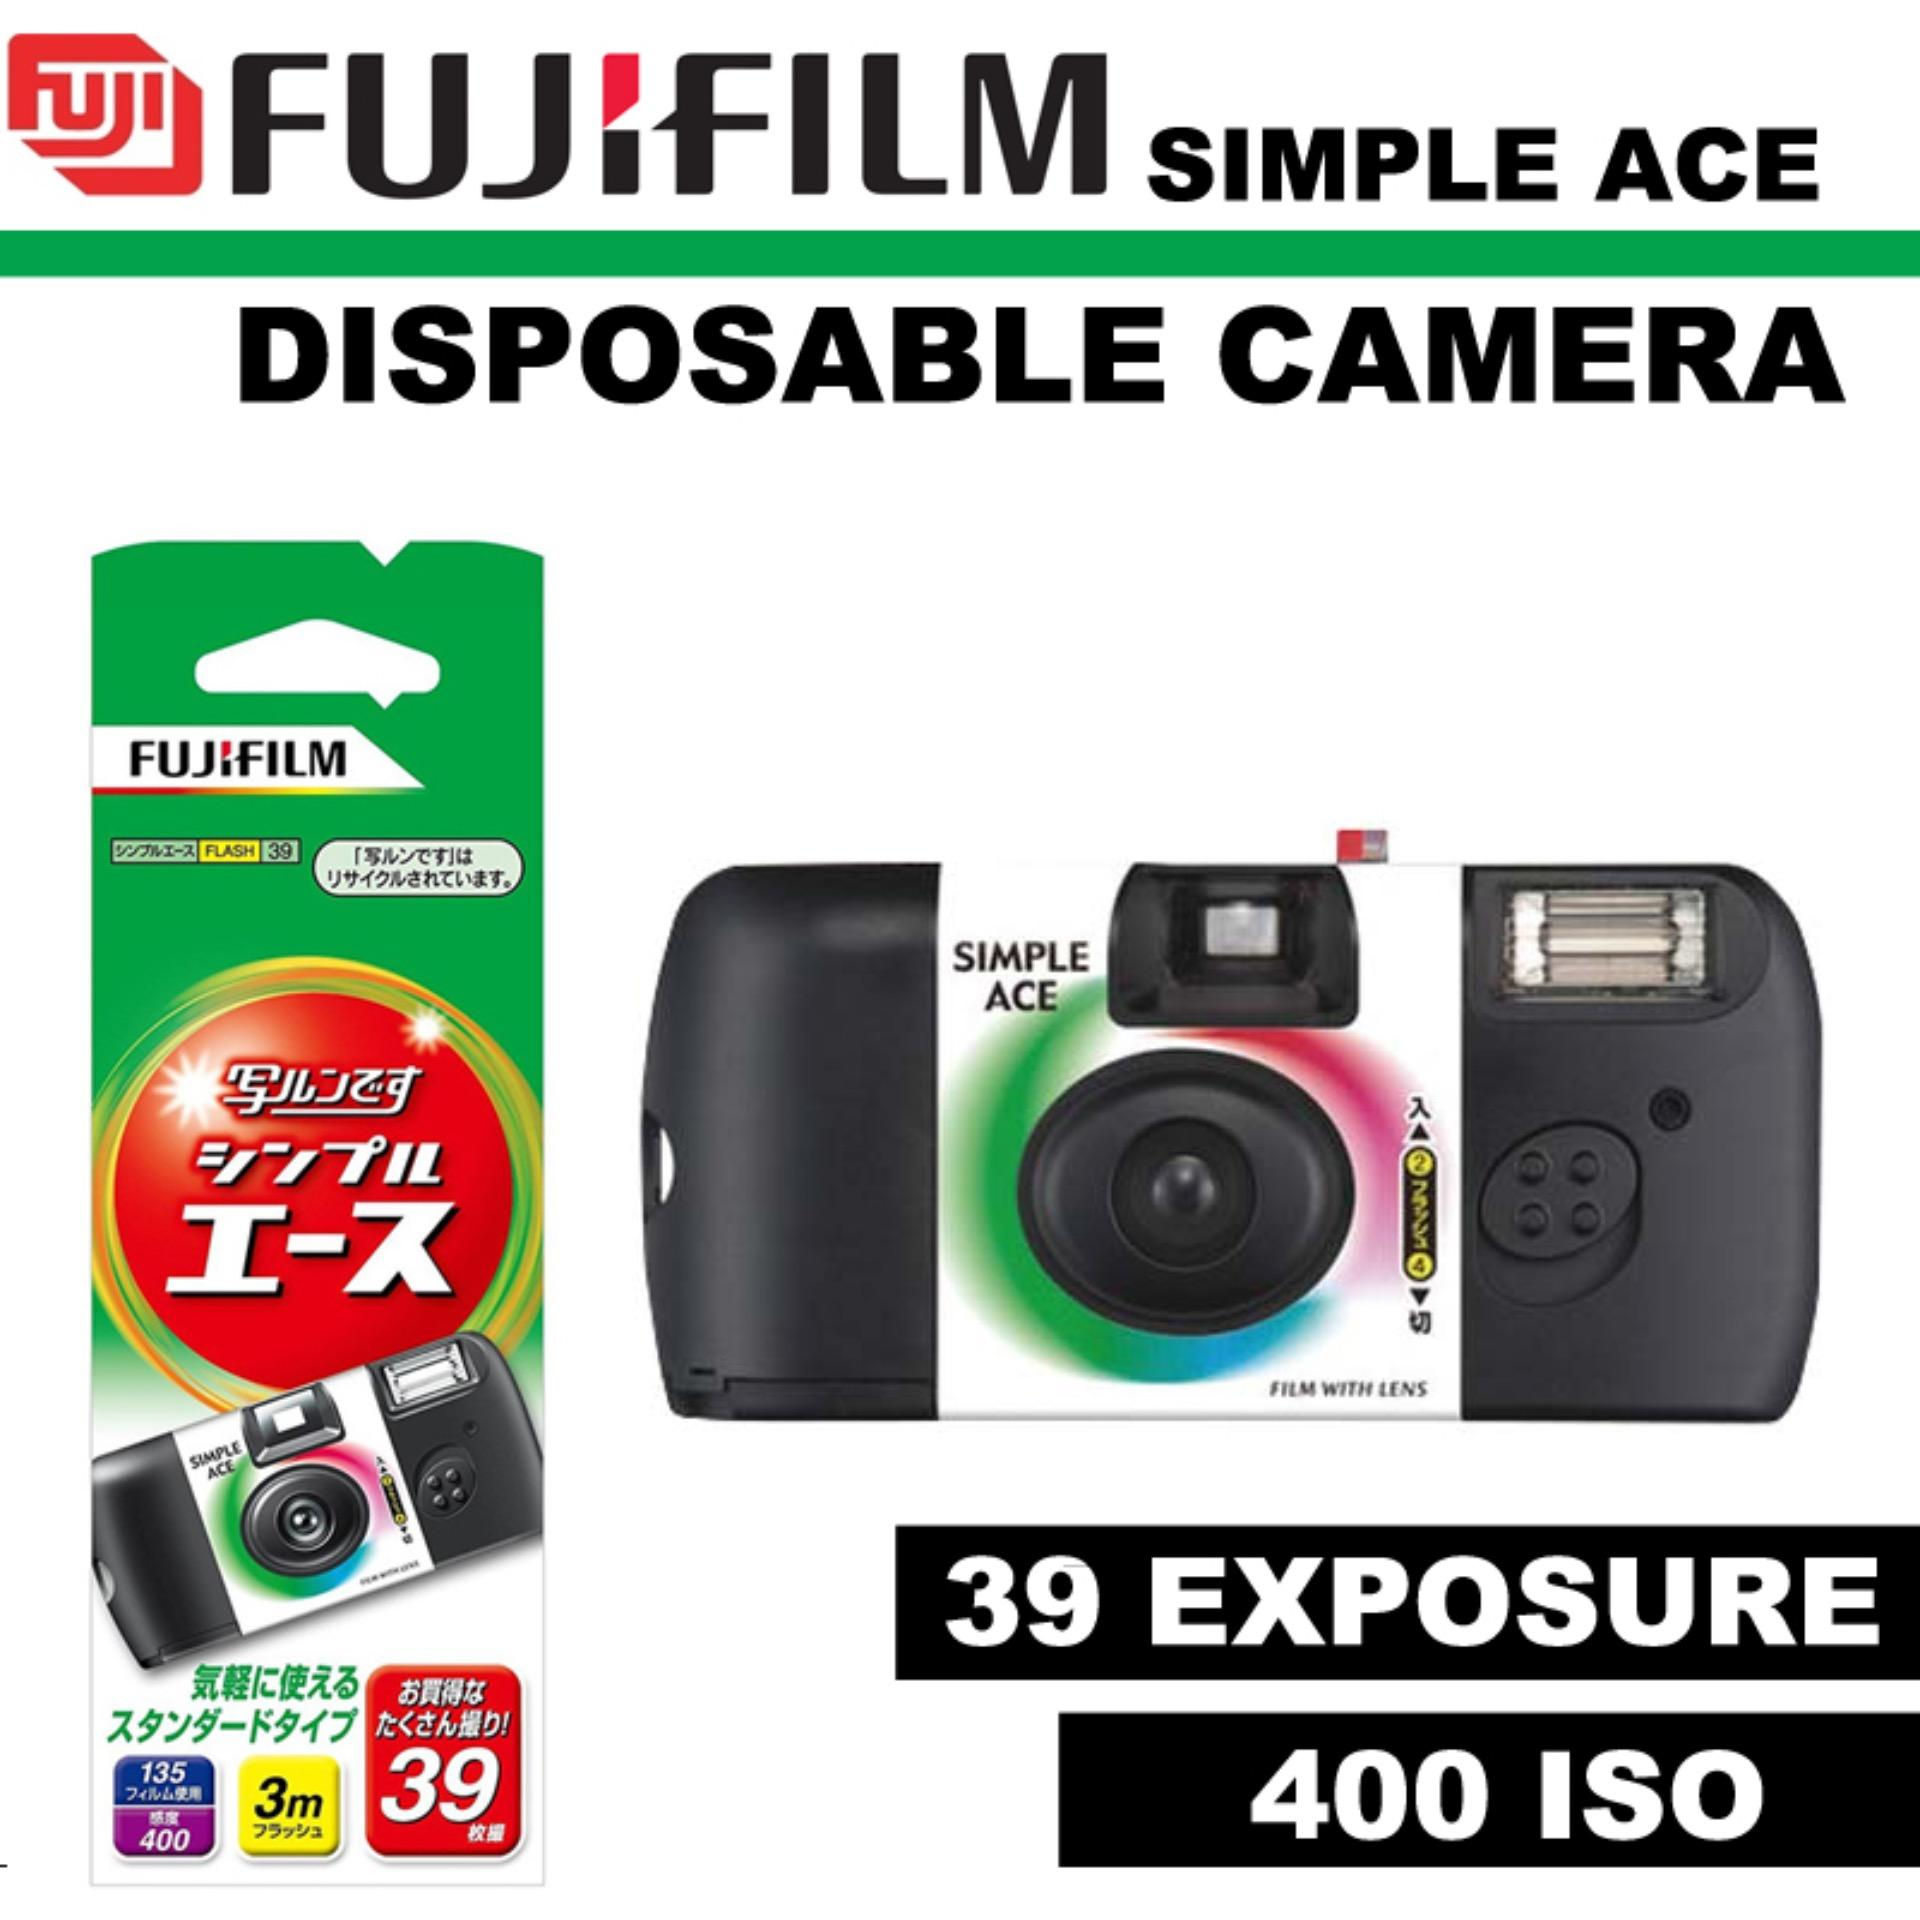 FUJIFILM 35mm Disposable Single Use Camera Simple Ace – ISO 400 – 35mm Disposable Camera